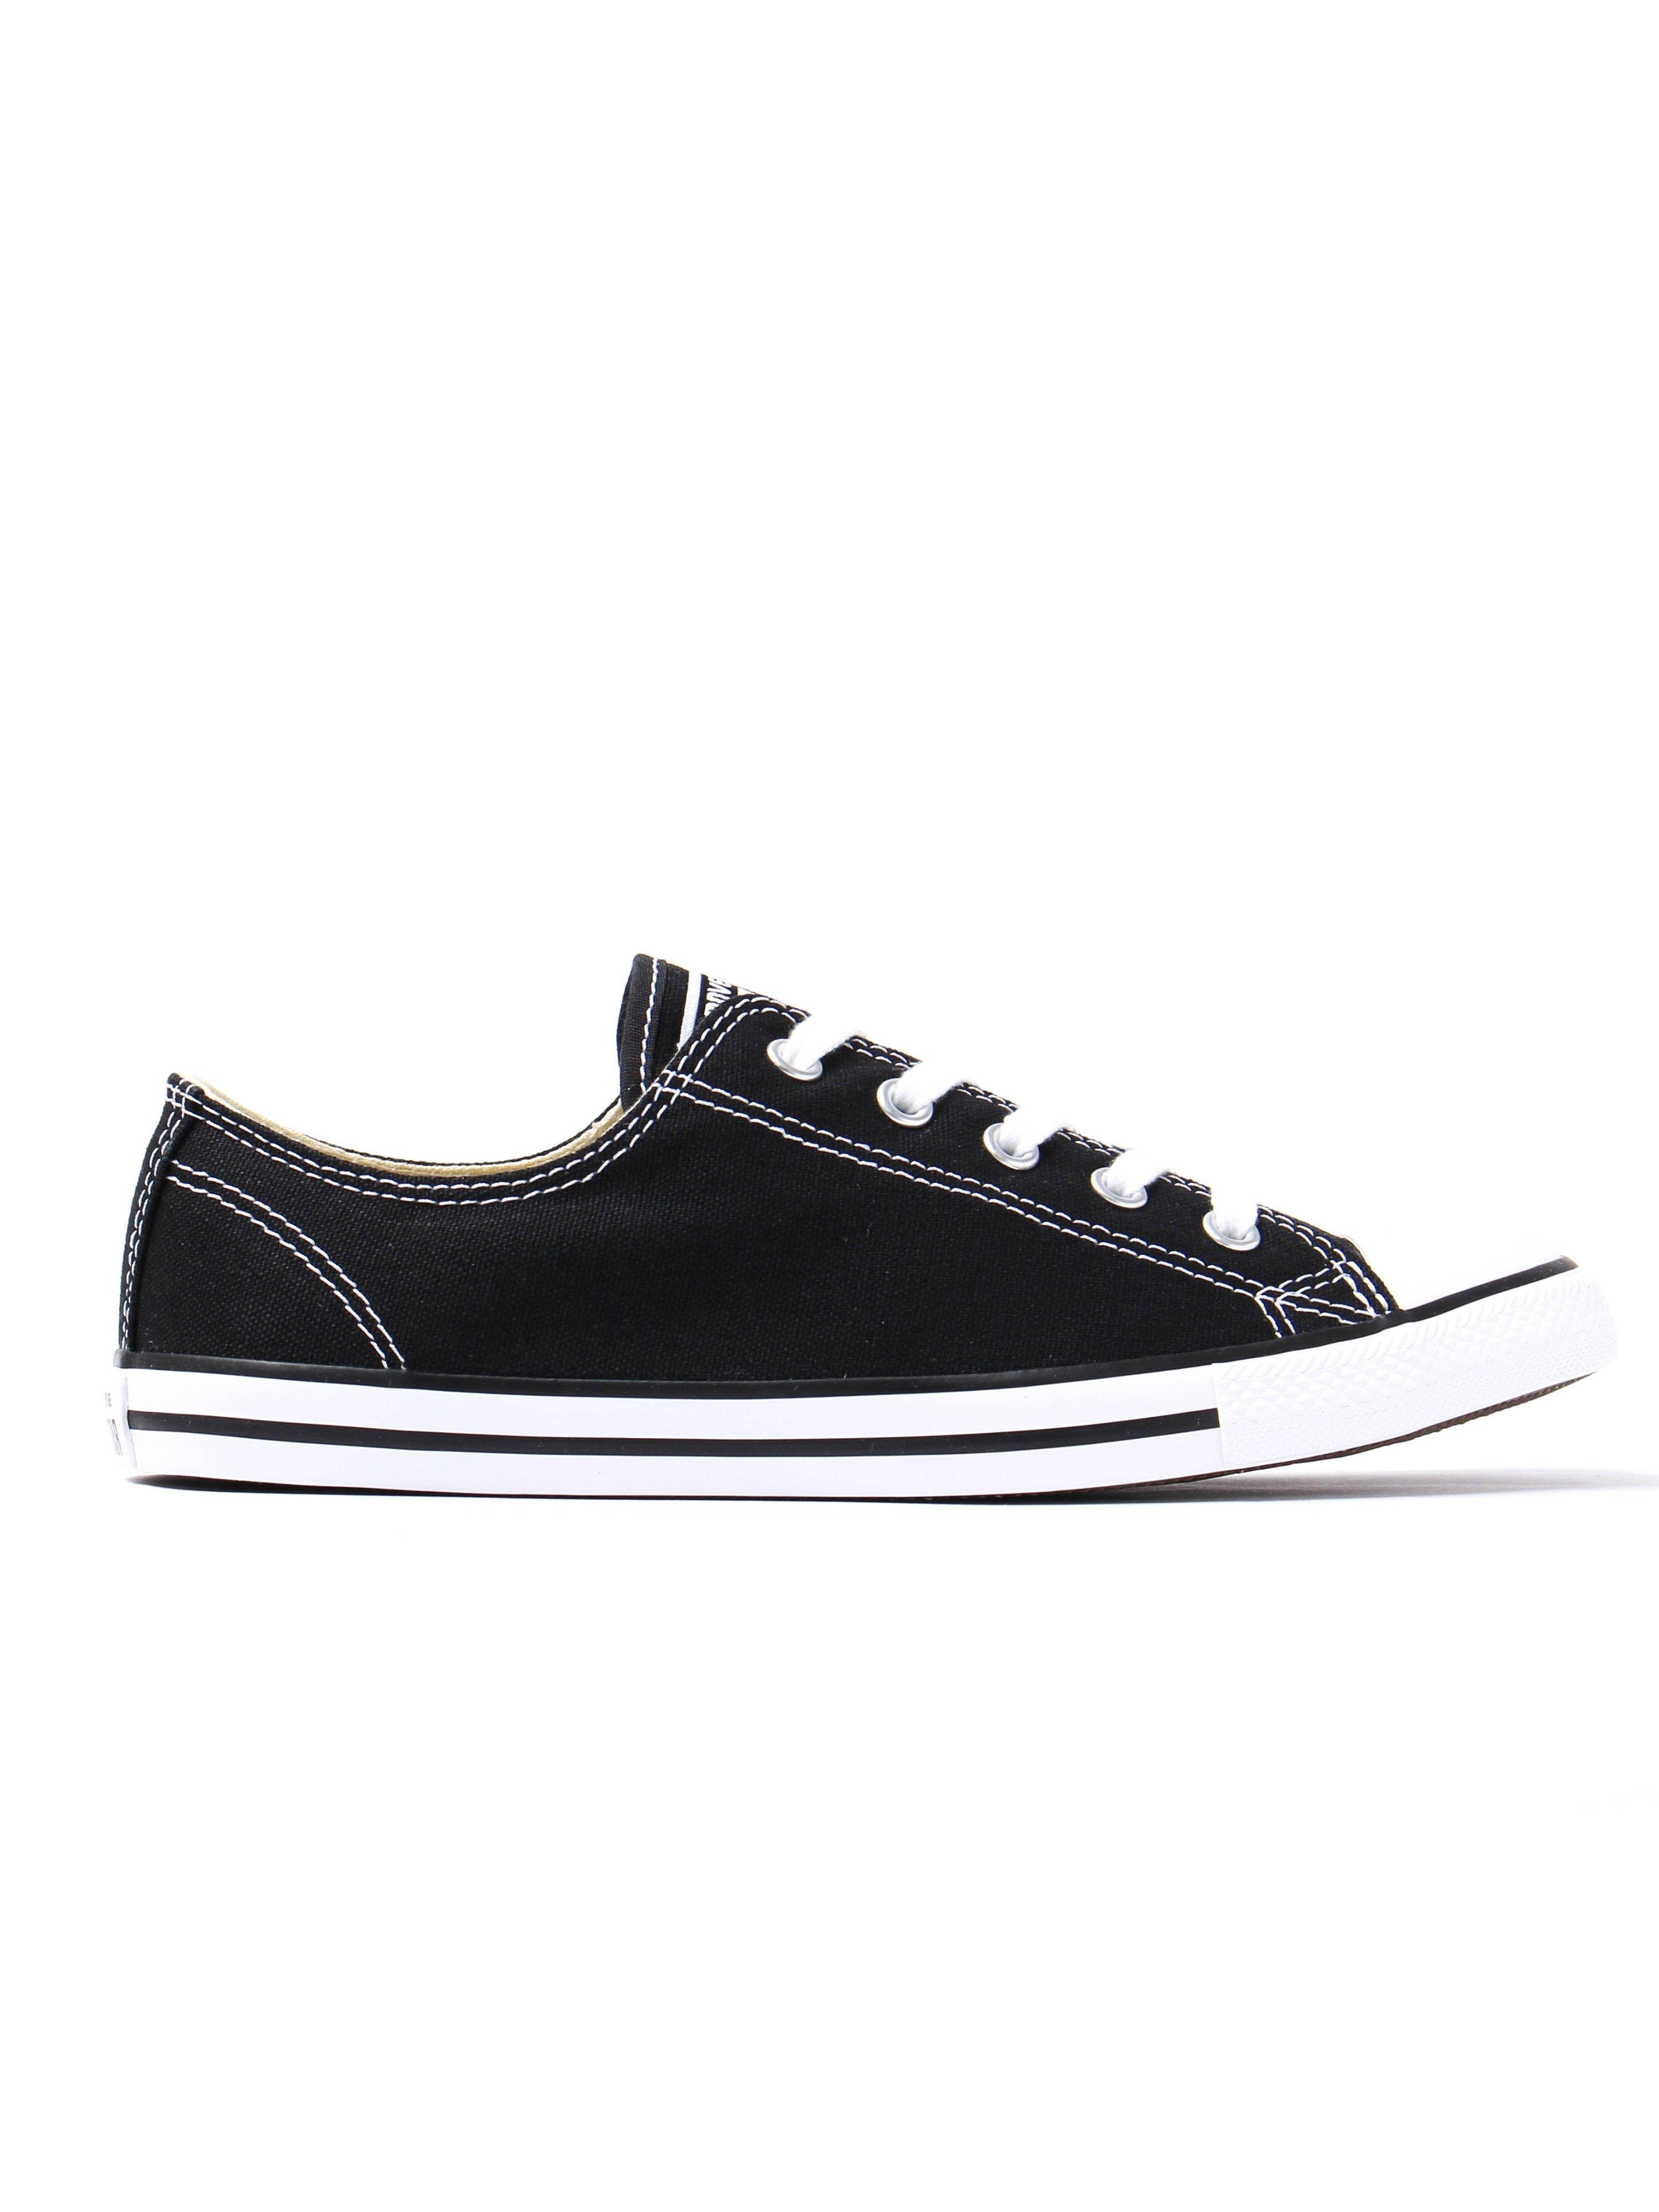 converse womens chuck taylor all star dainty trainers black